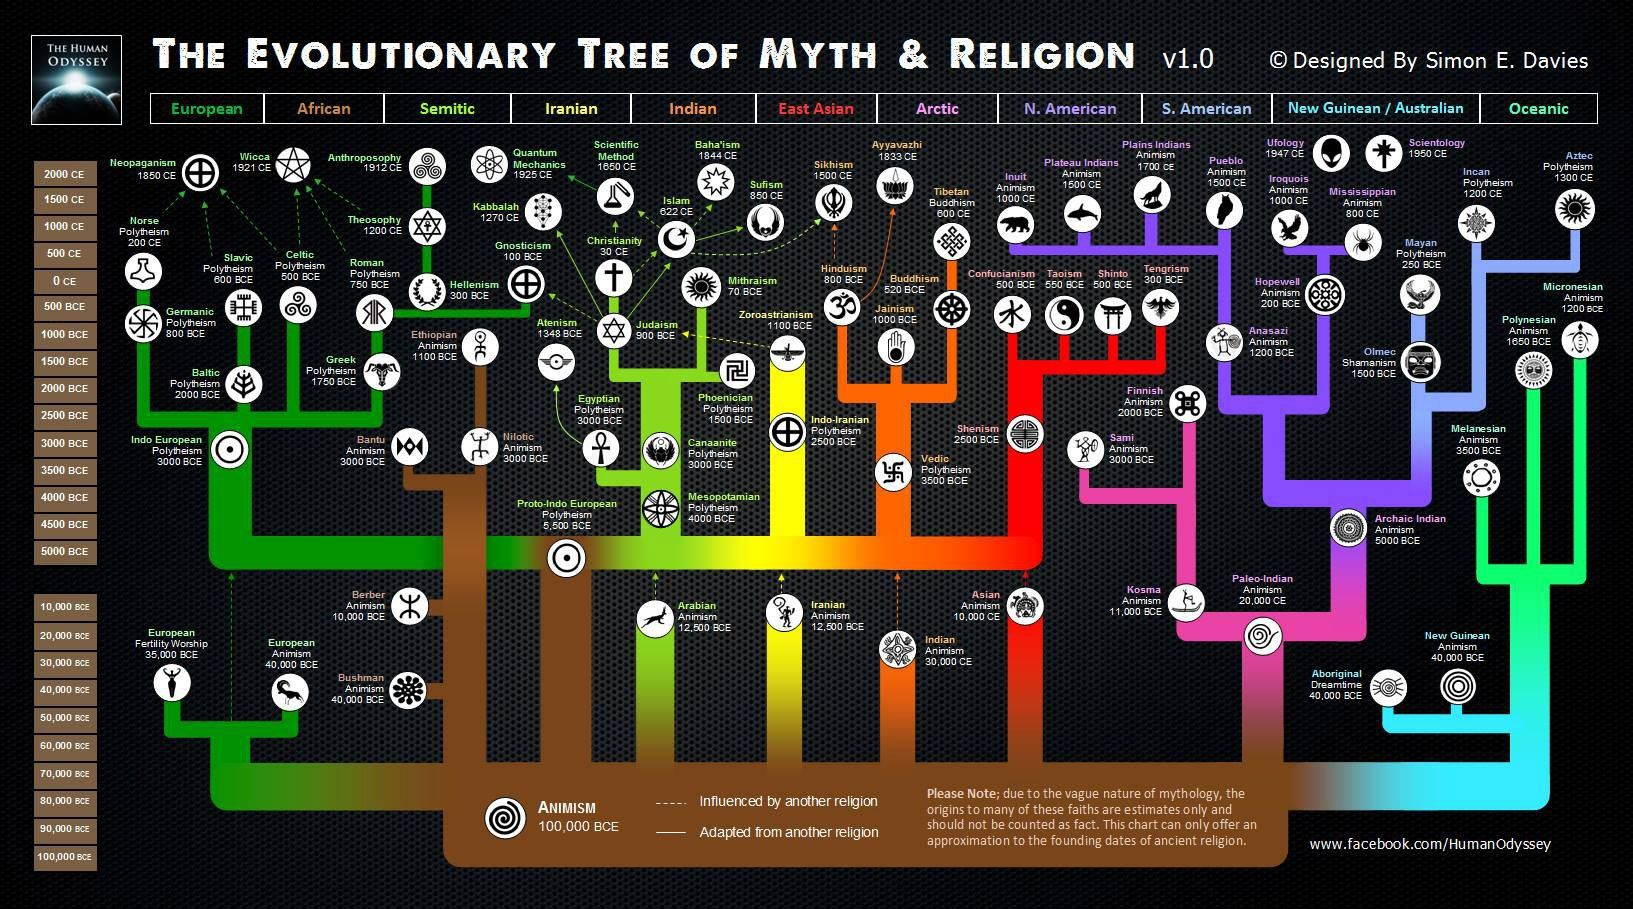 Timeline Myth Religion Dreamwishmaker Maps Pinterest  # Muebles Pascual Rius